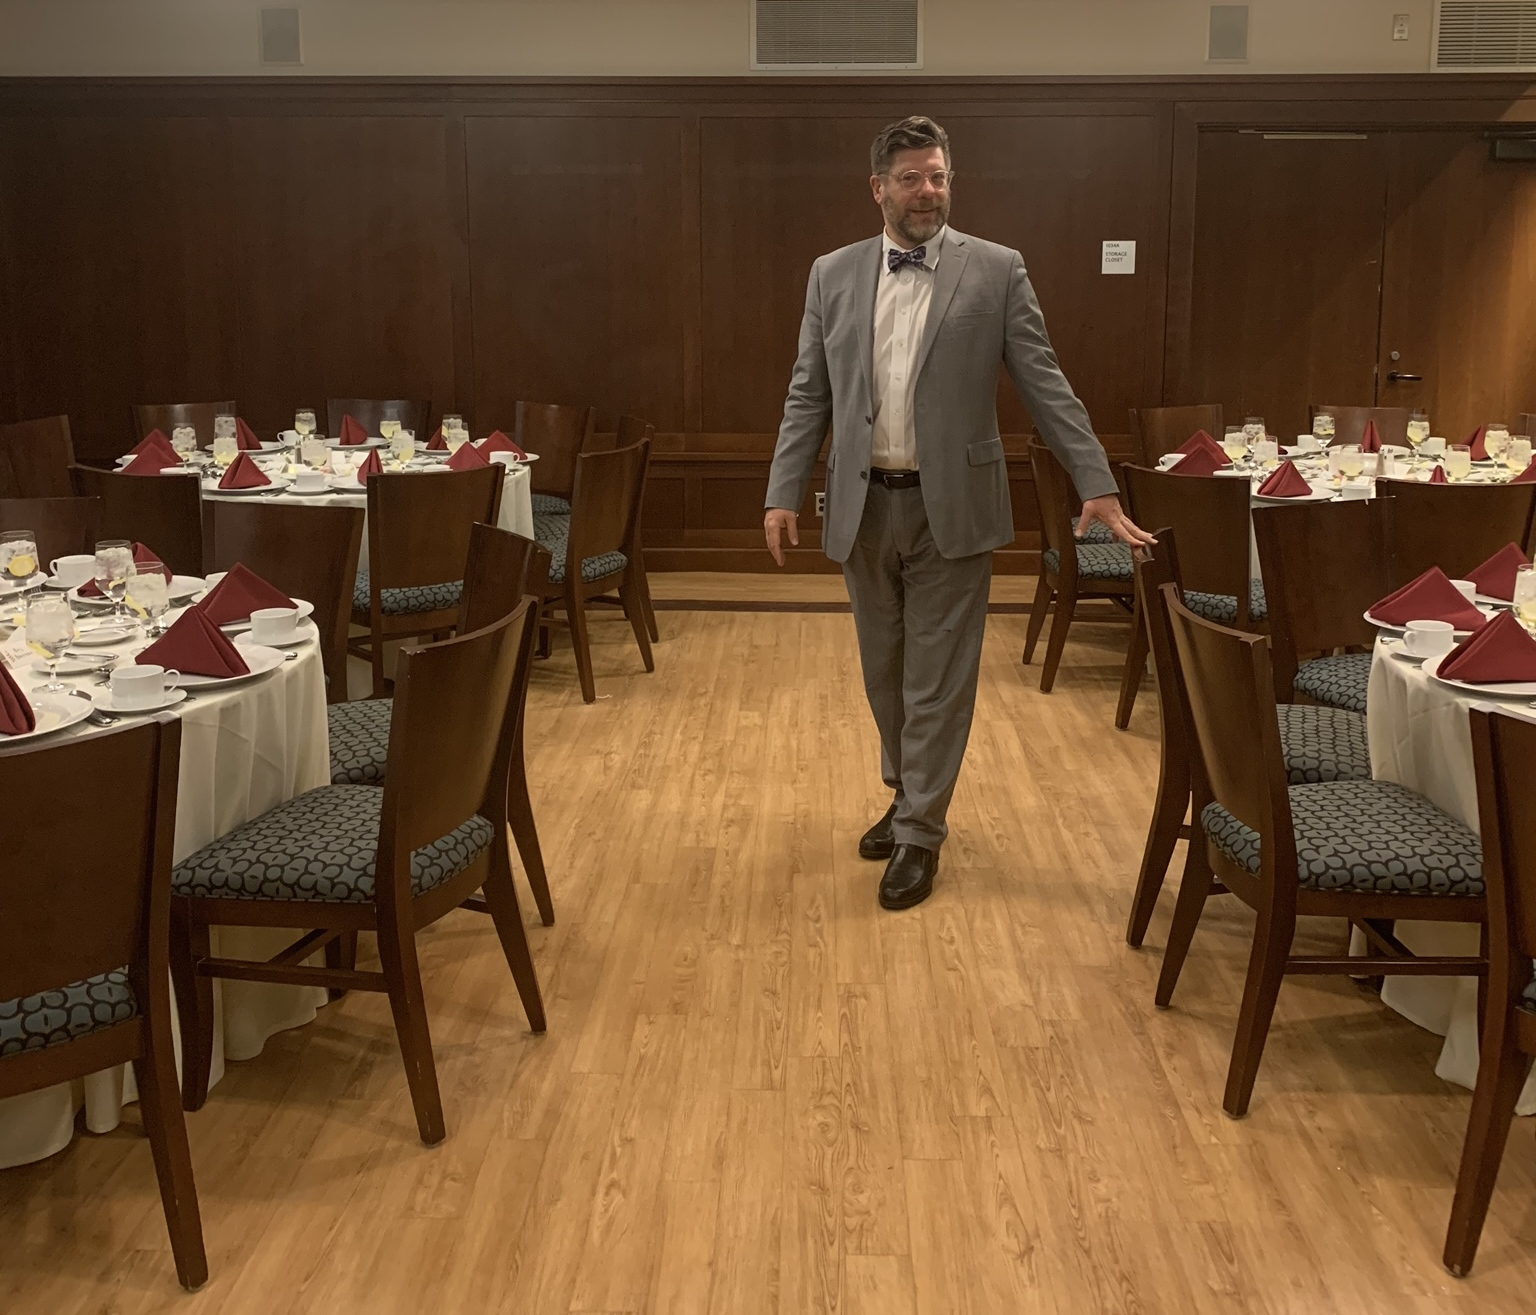 Waiting for the arrival of dinner guests at last week's How to Adult etiquette dinner at MIT.